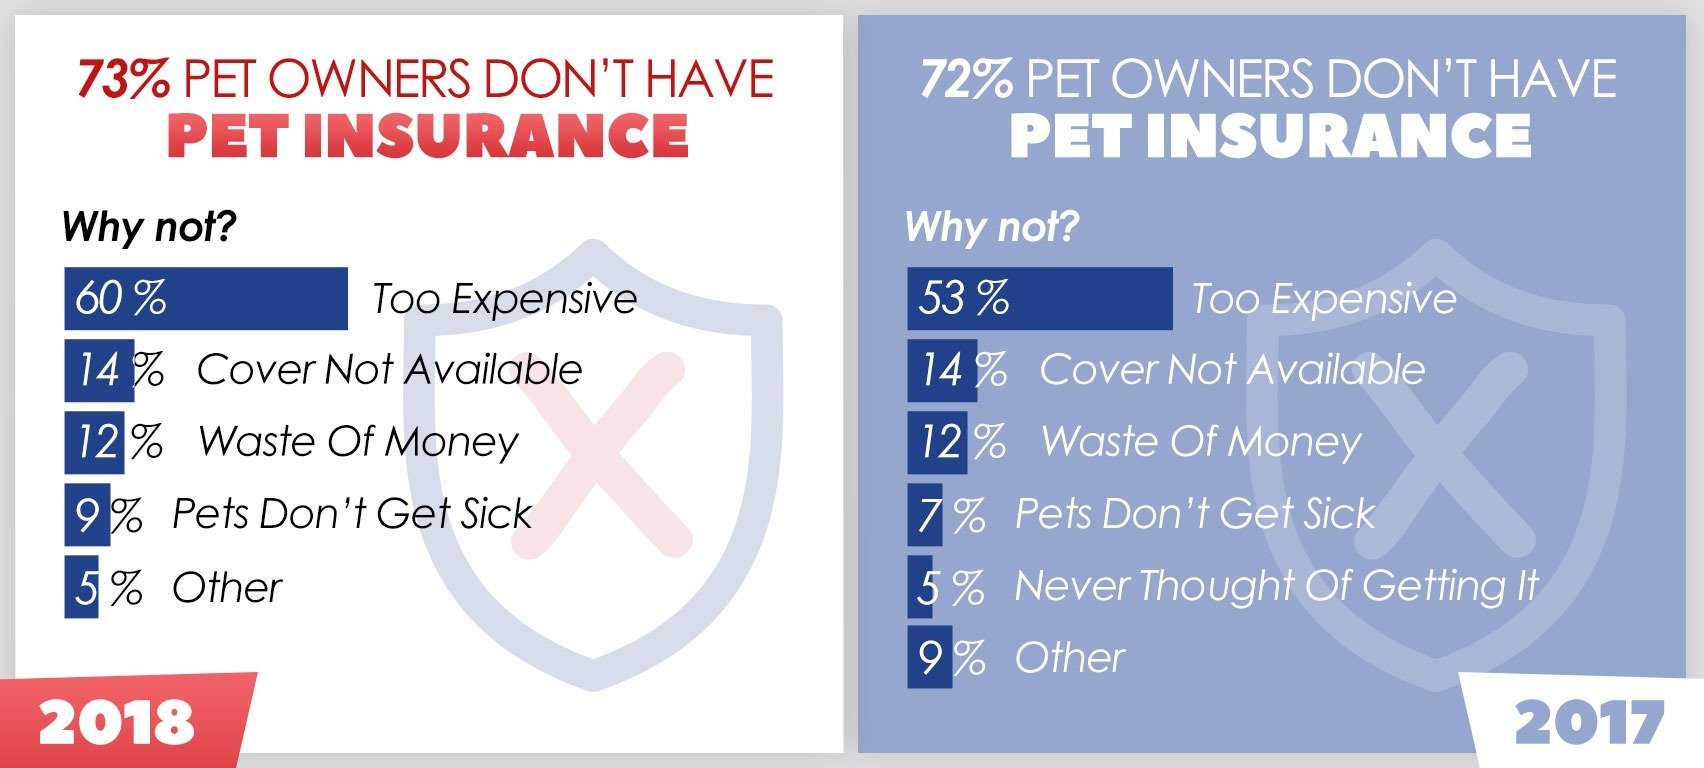 Why People Dont Have Pet Insurance